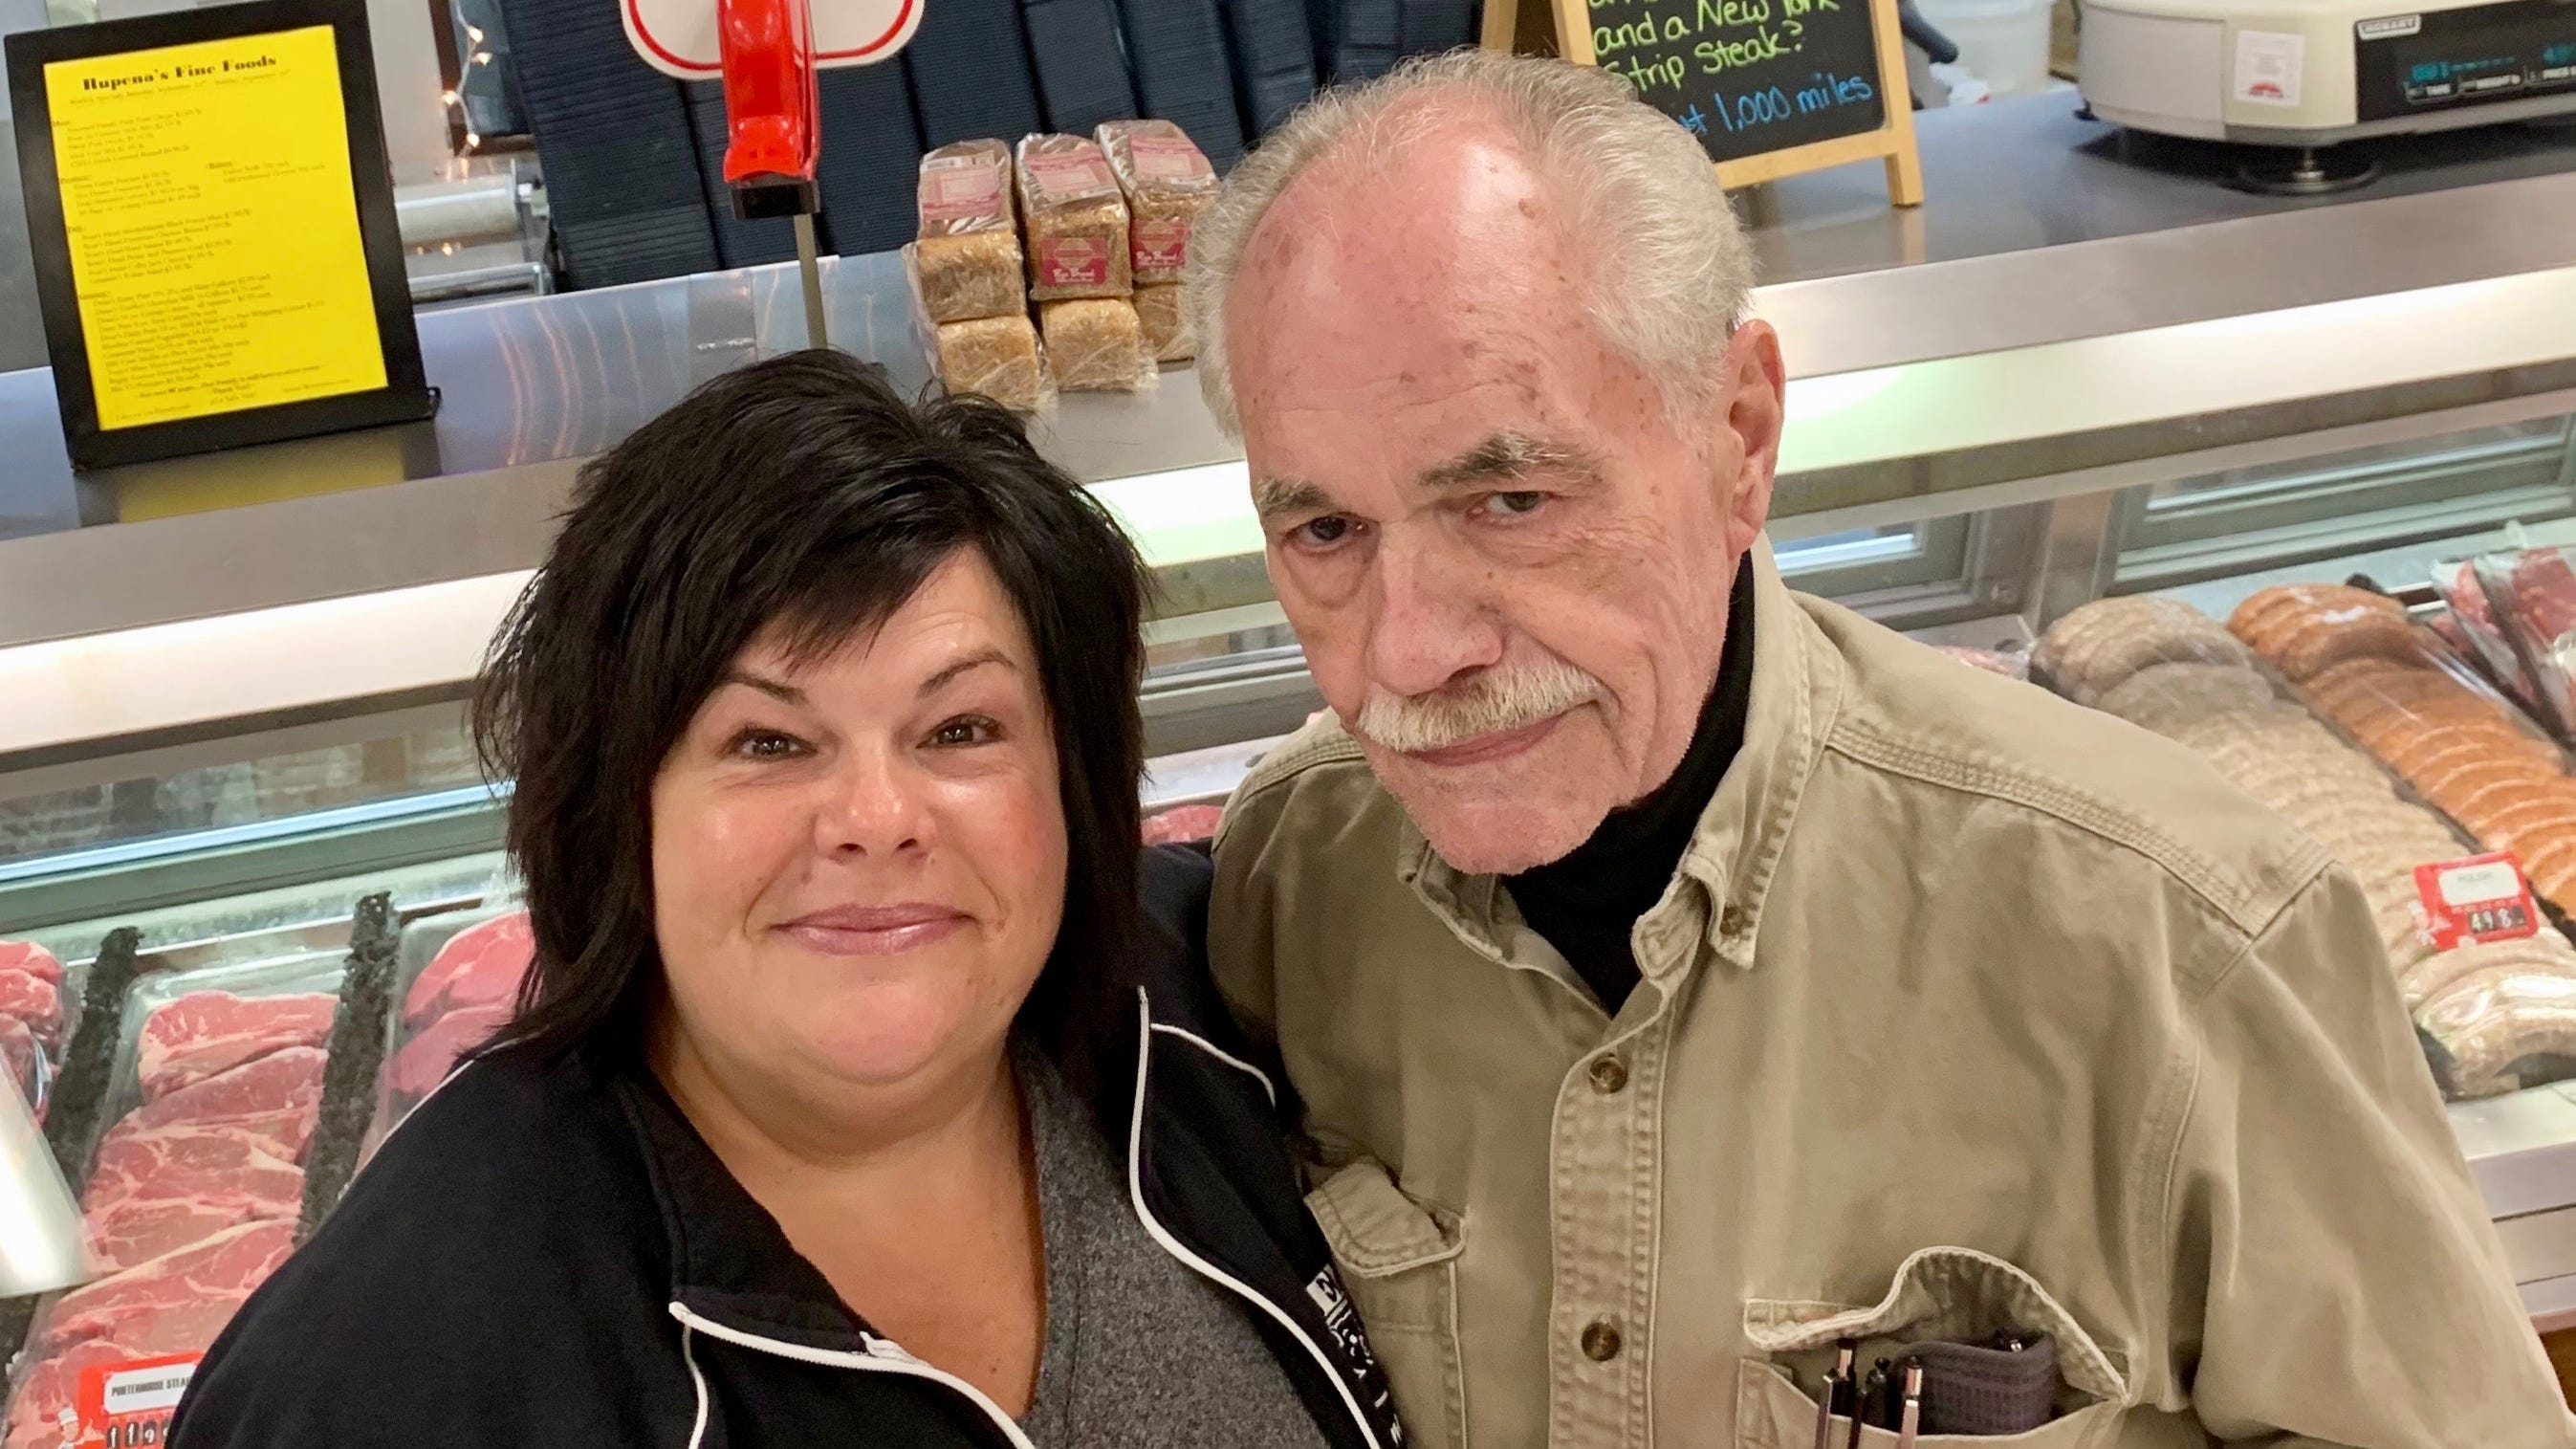 Owner John Rupena holds a rump roast at Rupena's Fine Foods in West Allis with daughter Maria Rupena Karczewski, who oversees everything in the store.